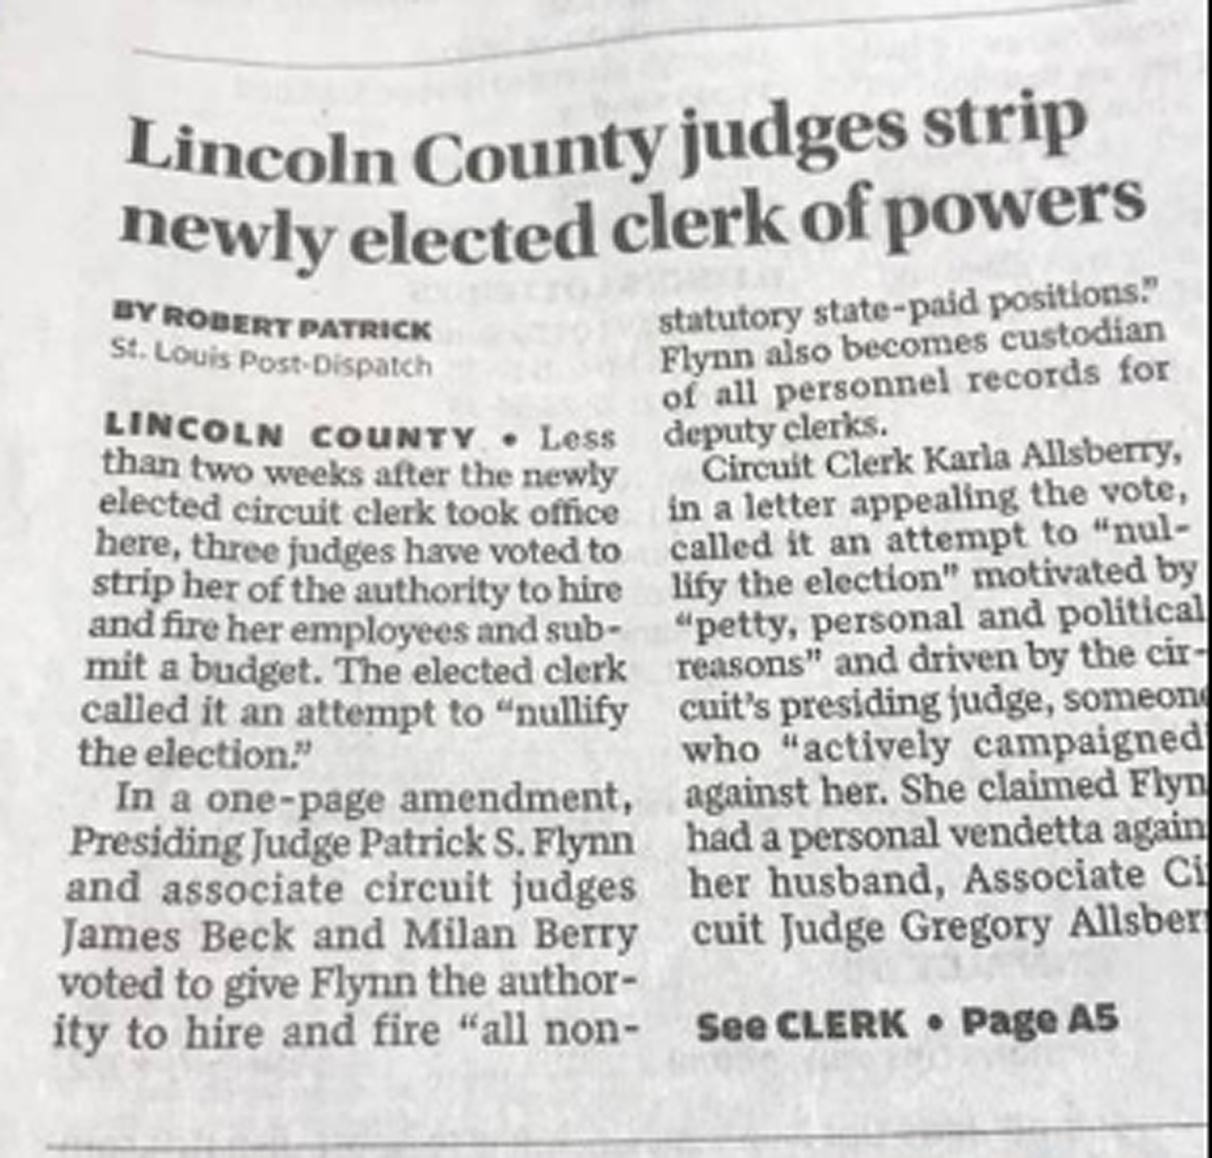 From the Lincoln County Journal. Go pick up a copy while quantities last.